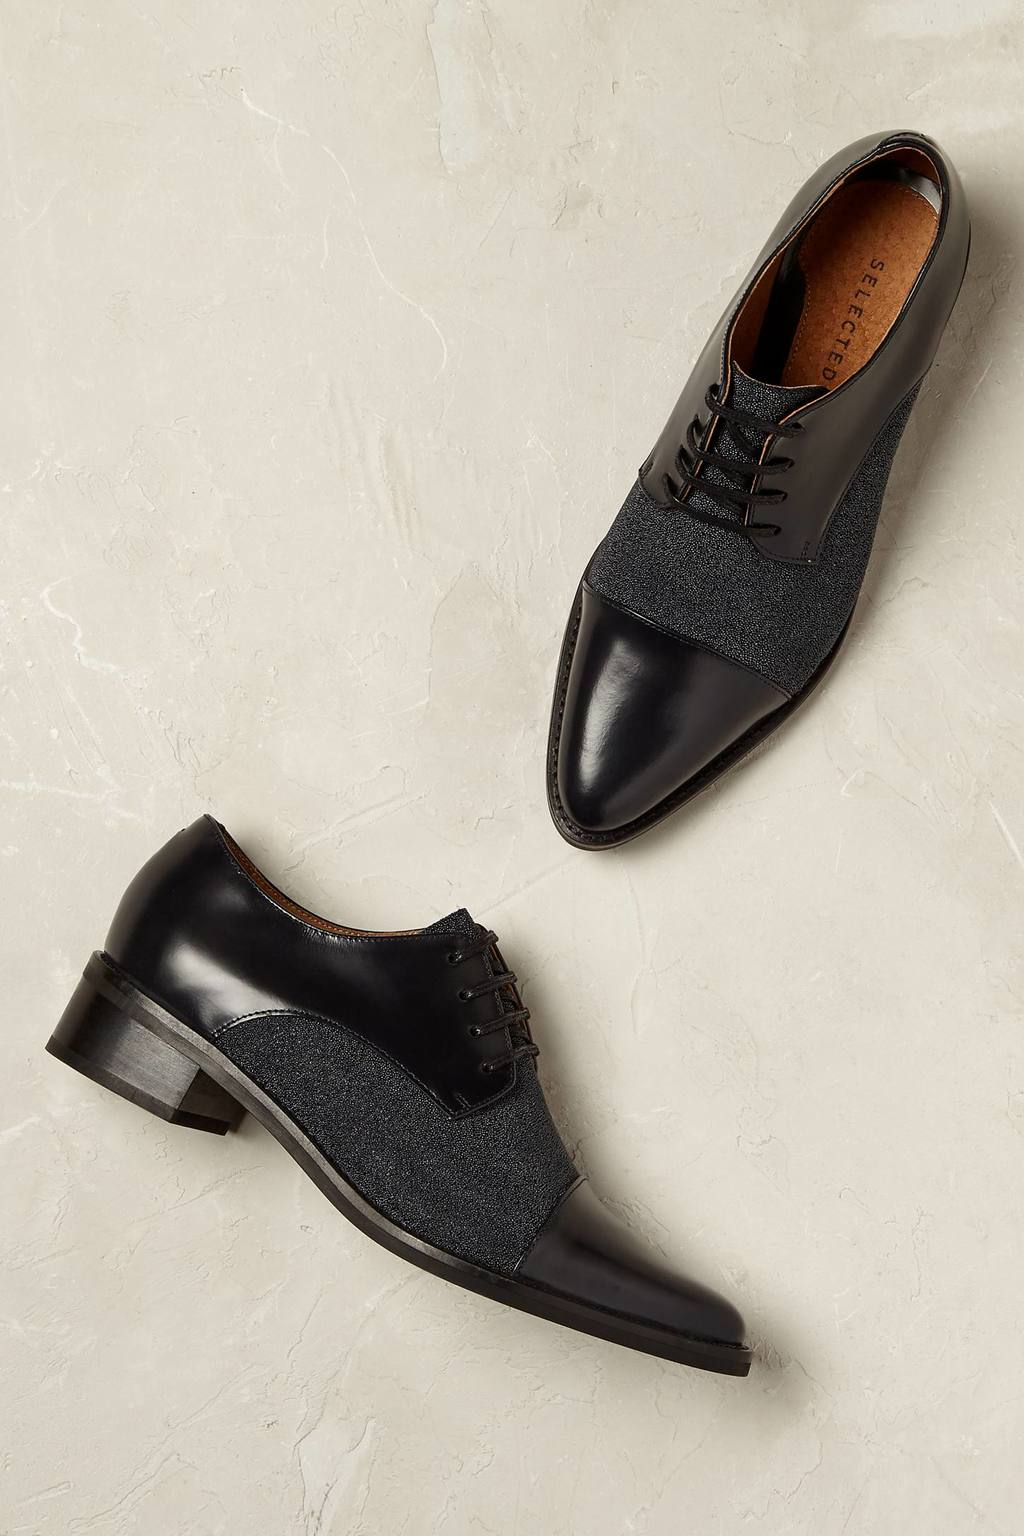 Hepburn Brogues - predominant colour: black; occasions: casual, creative work; material: leather; heel height: flat; toe: round toe; style: brogues; finish: plain; pattern: plain; wardrobe: basic; season: a/w 2016